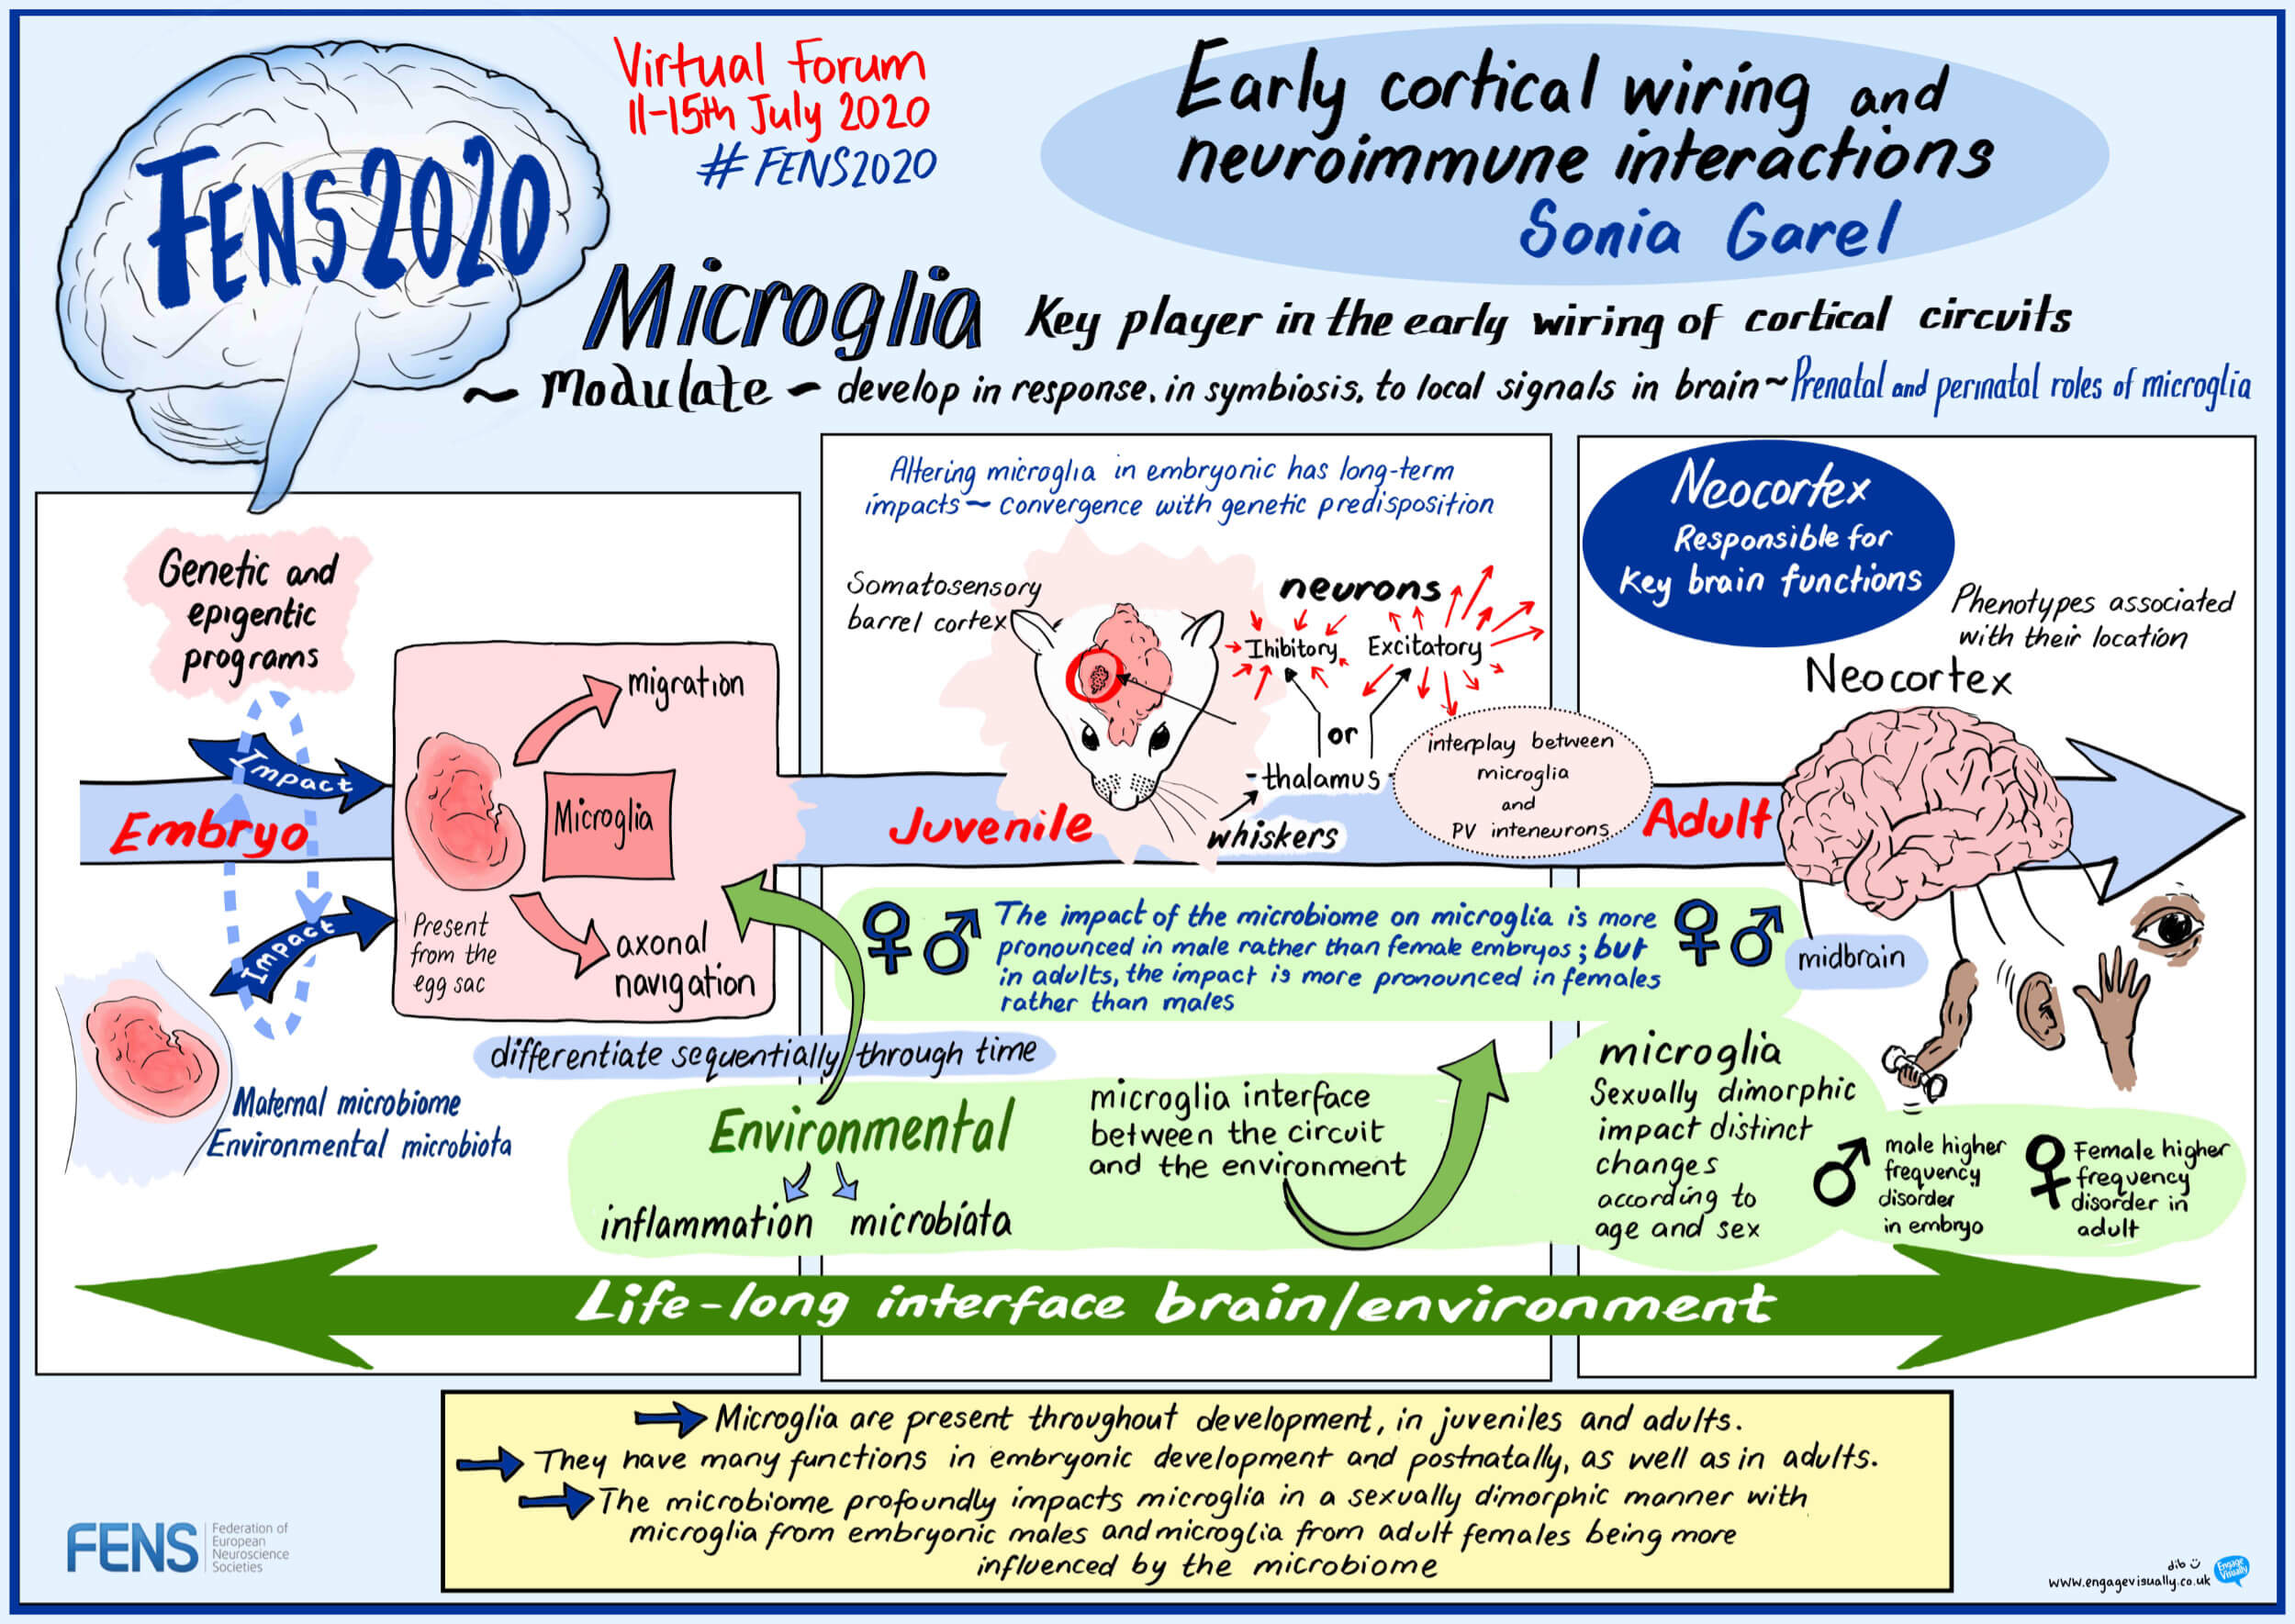 """""""Early cortical wiring and neuroimmune interactions"""" by Sonia Garel (FR)"""